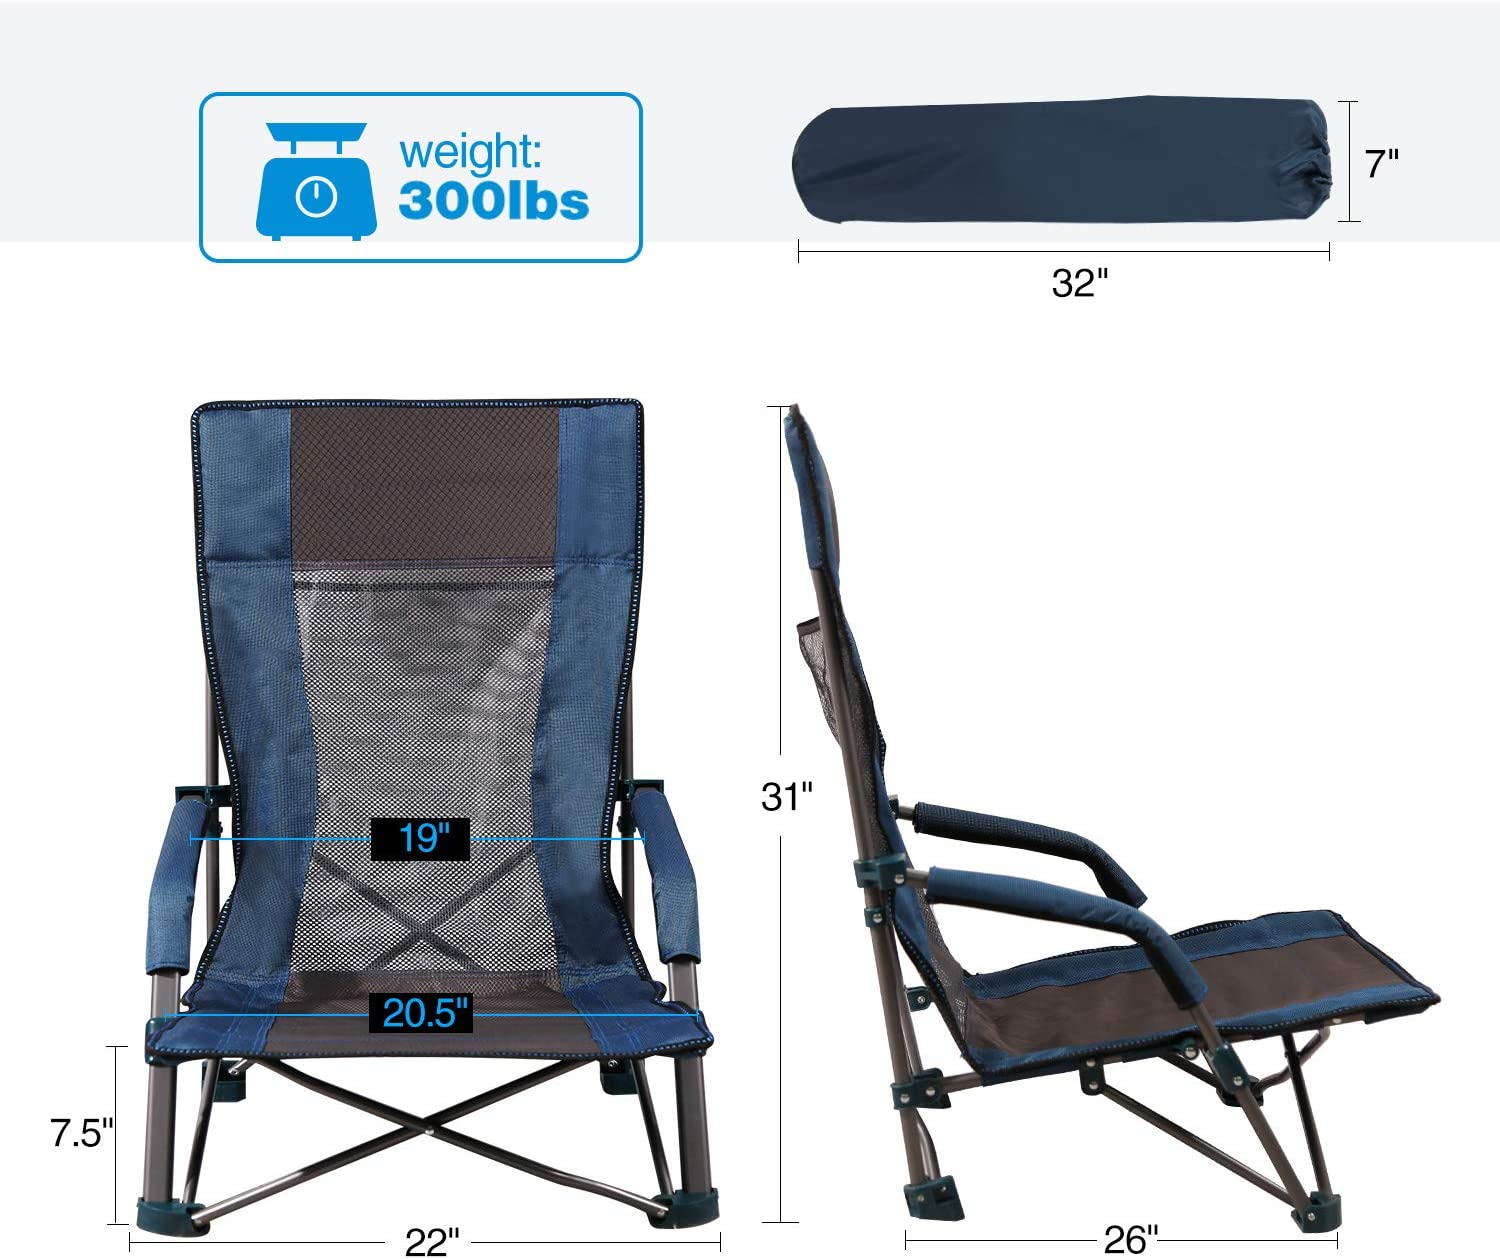 Portable Folding Camping Chairs for Adults Outdoor Backpacking Lawn CAMPMAX High Back Low Sling Beach Chair